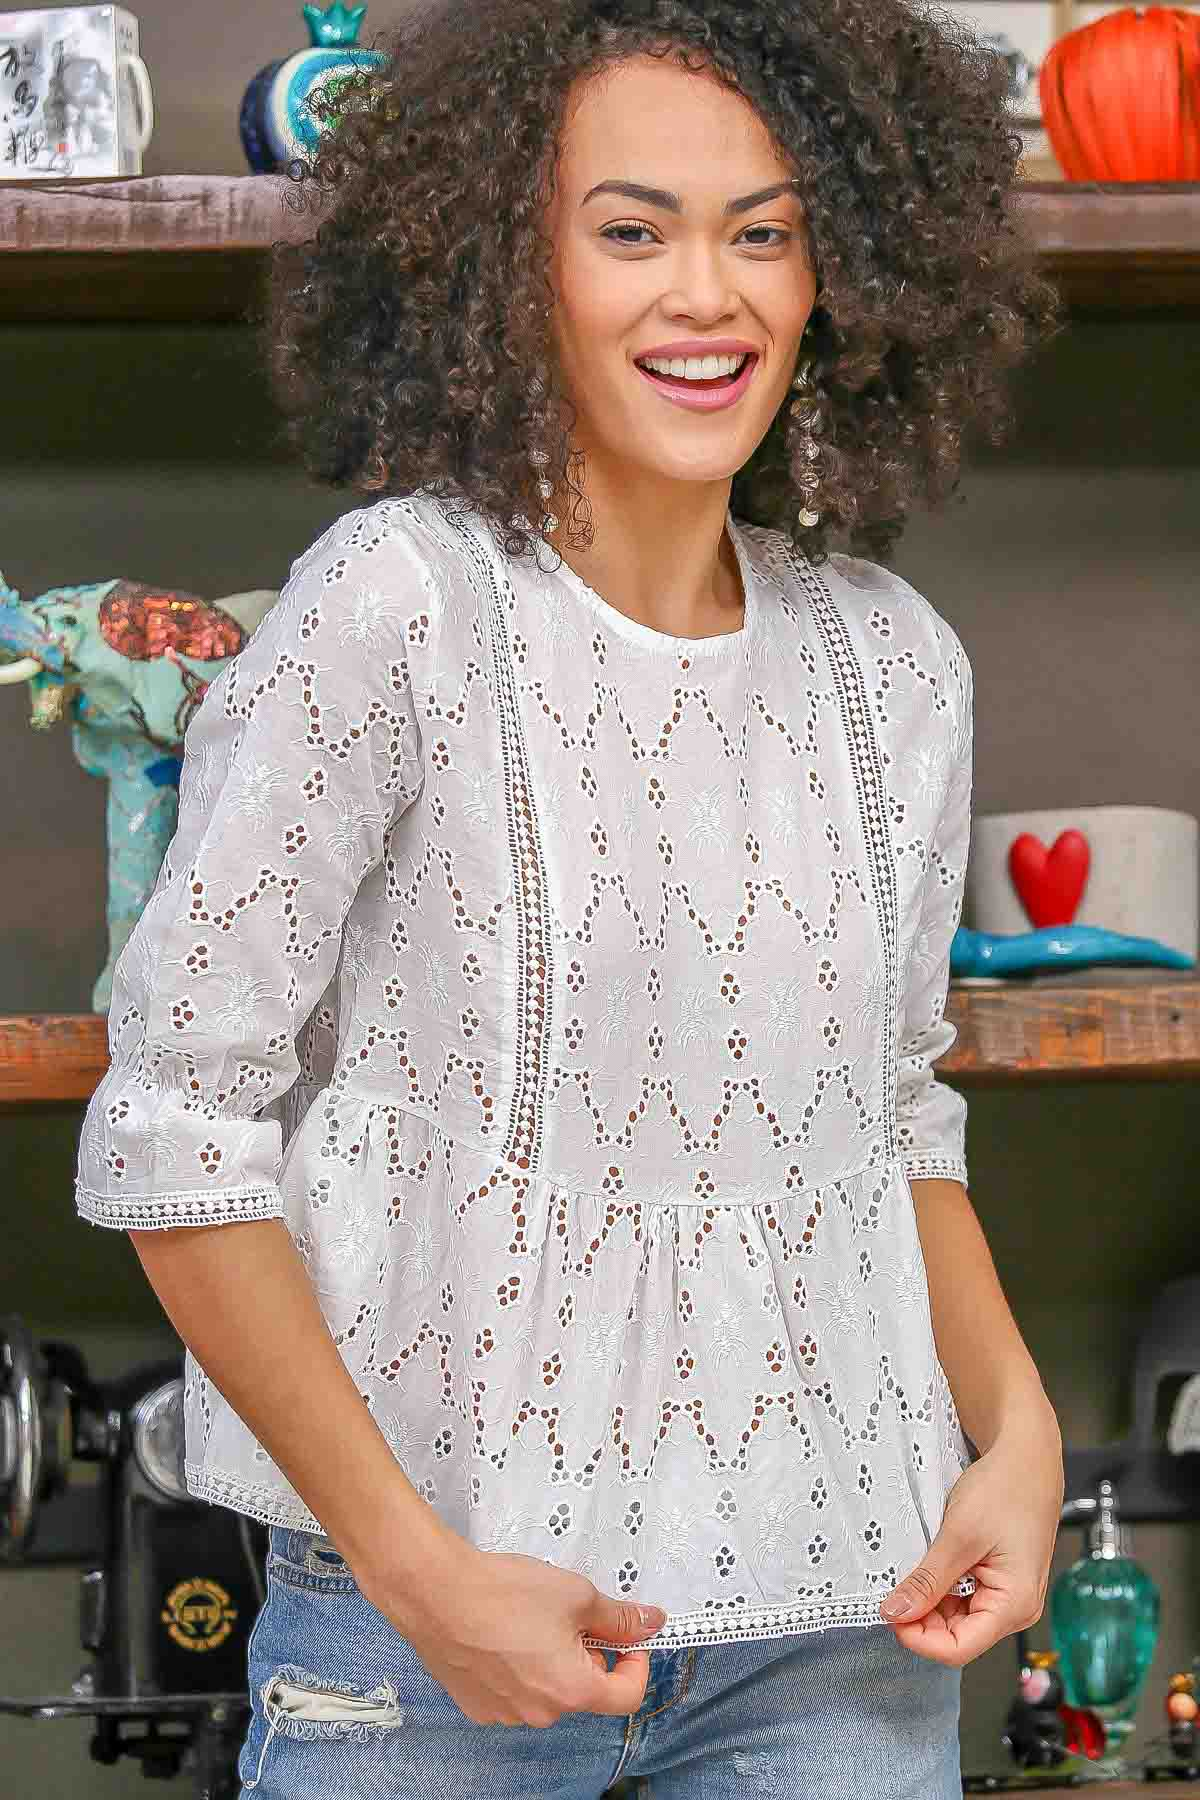 Cutwork lace embroidery detailed 3/4 sleeve blouse